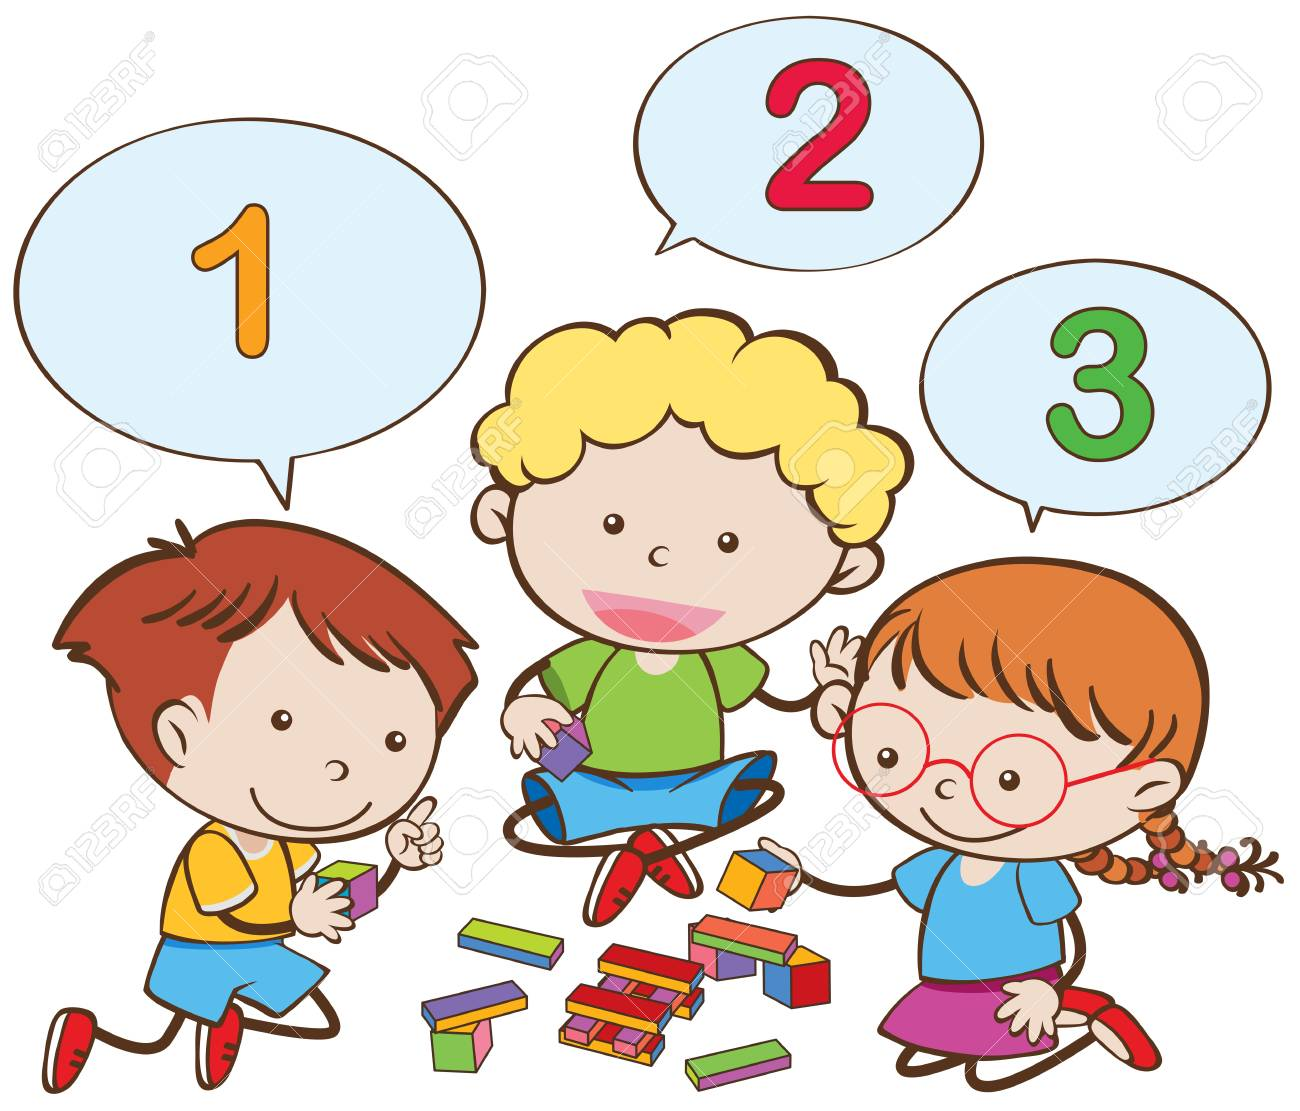 Happy children counting numbers illustration.